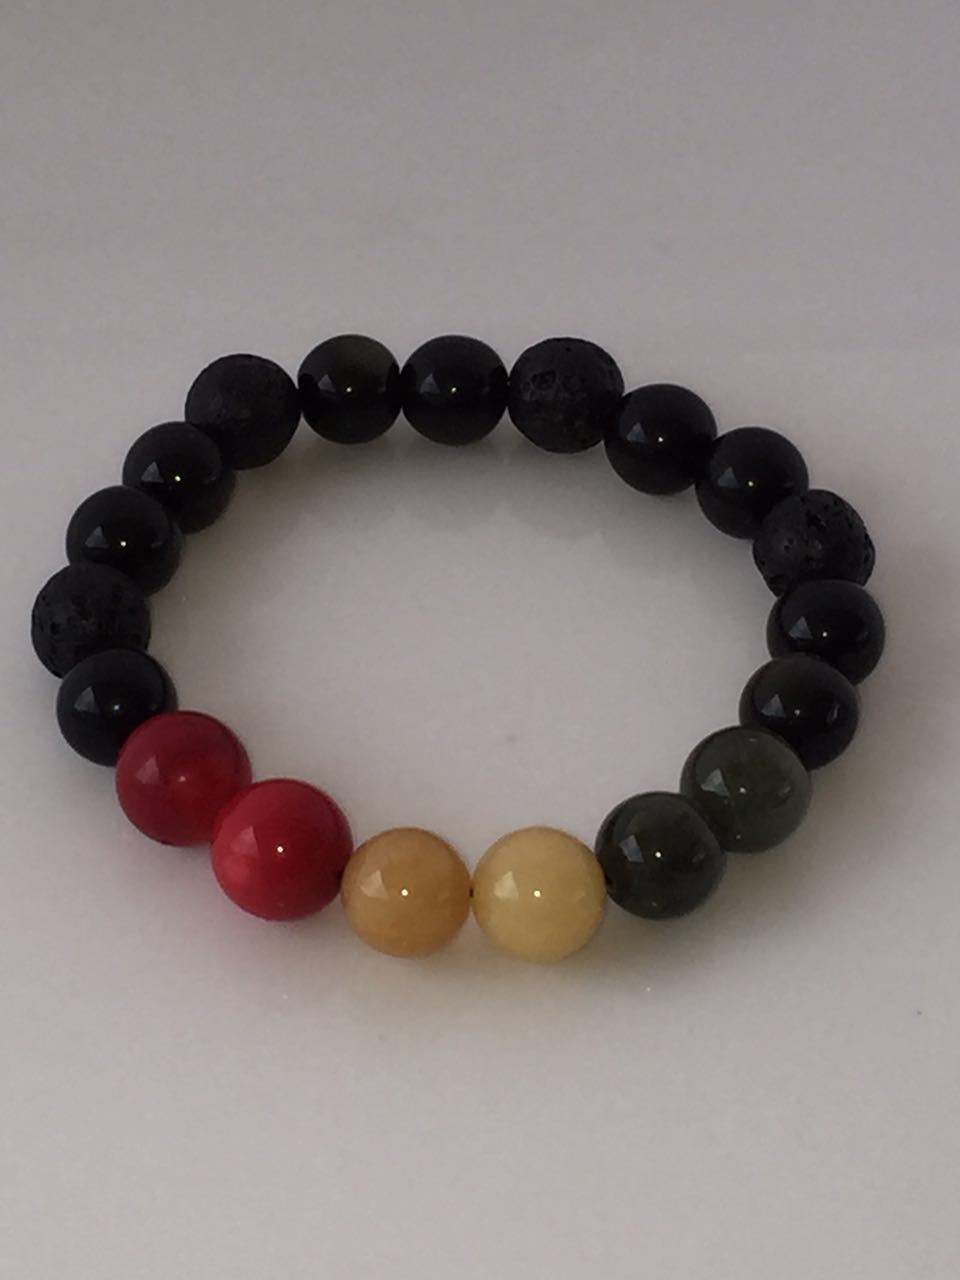 Fiori, Italian all made of Natural Gemstones for HIM